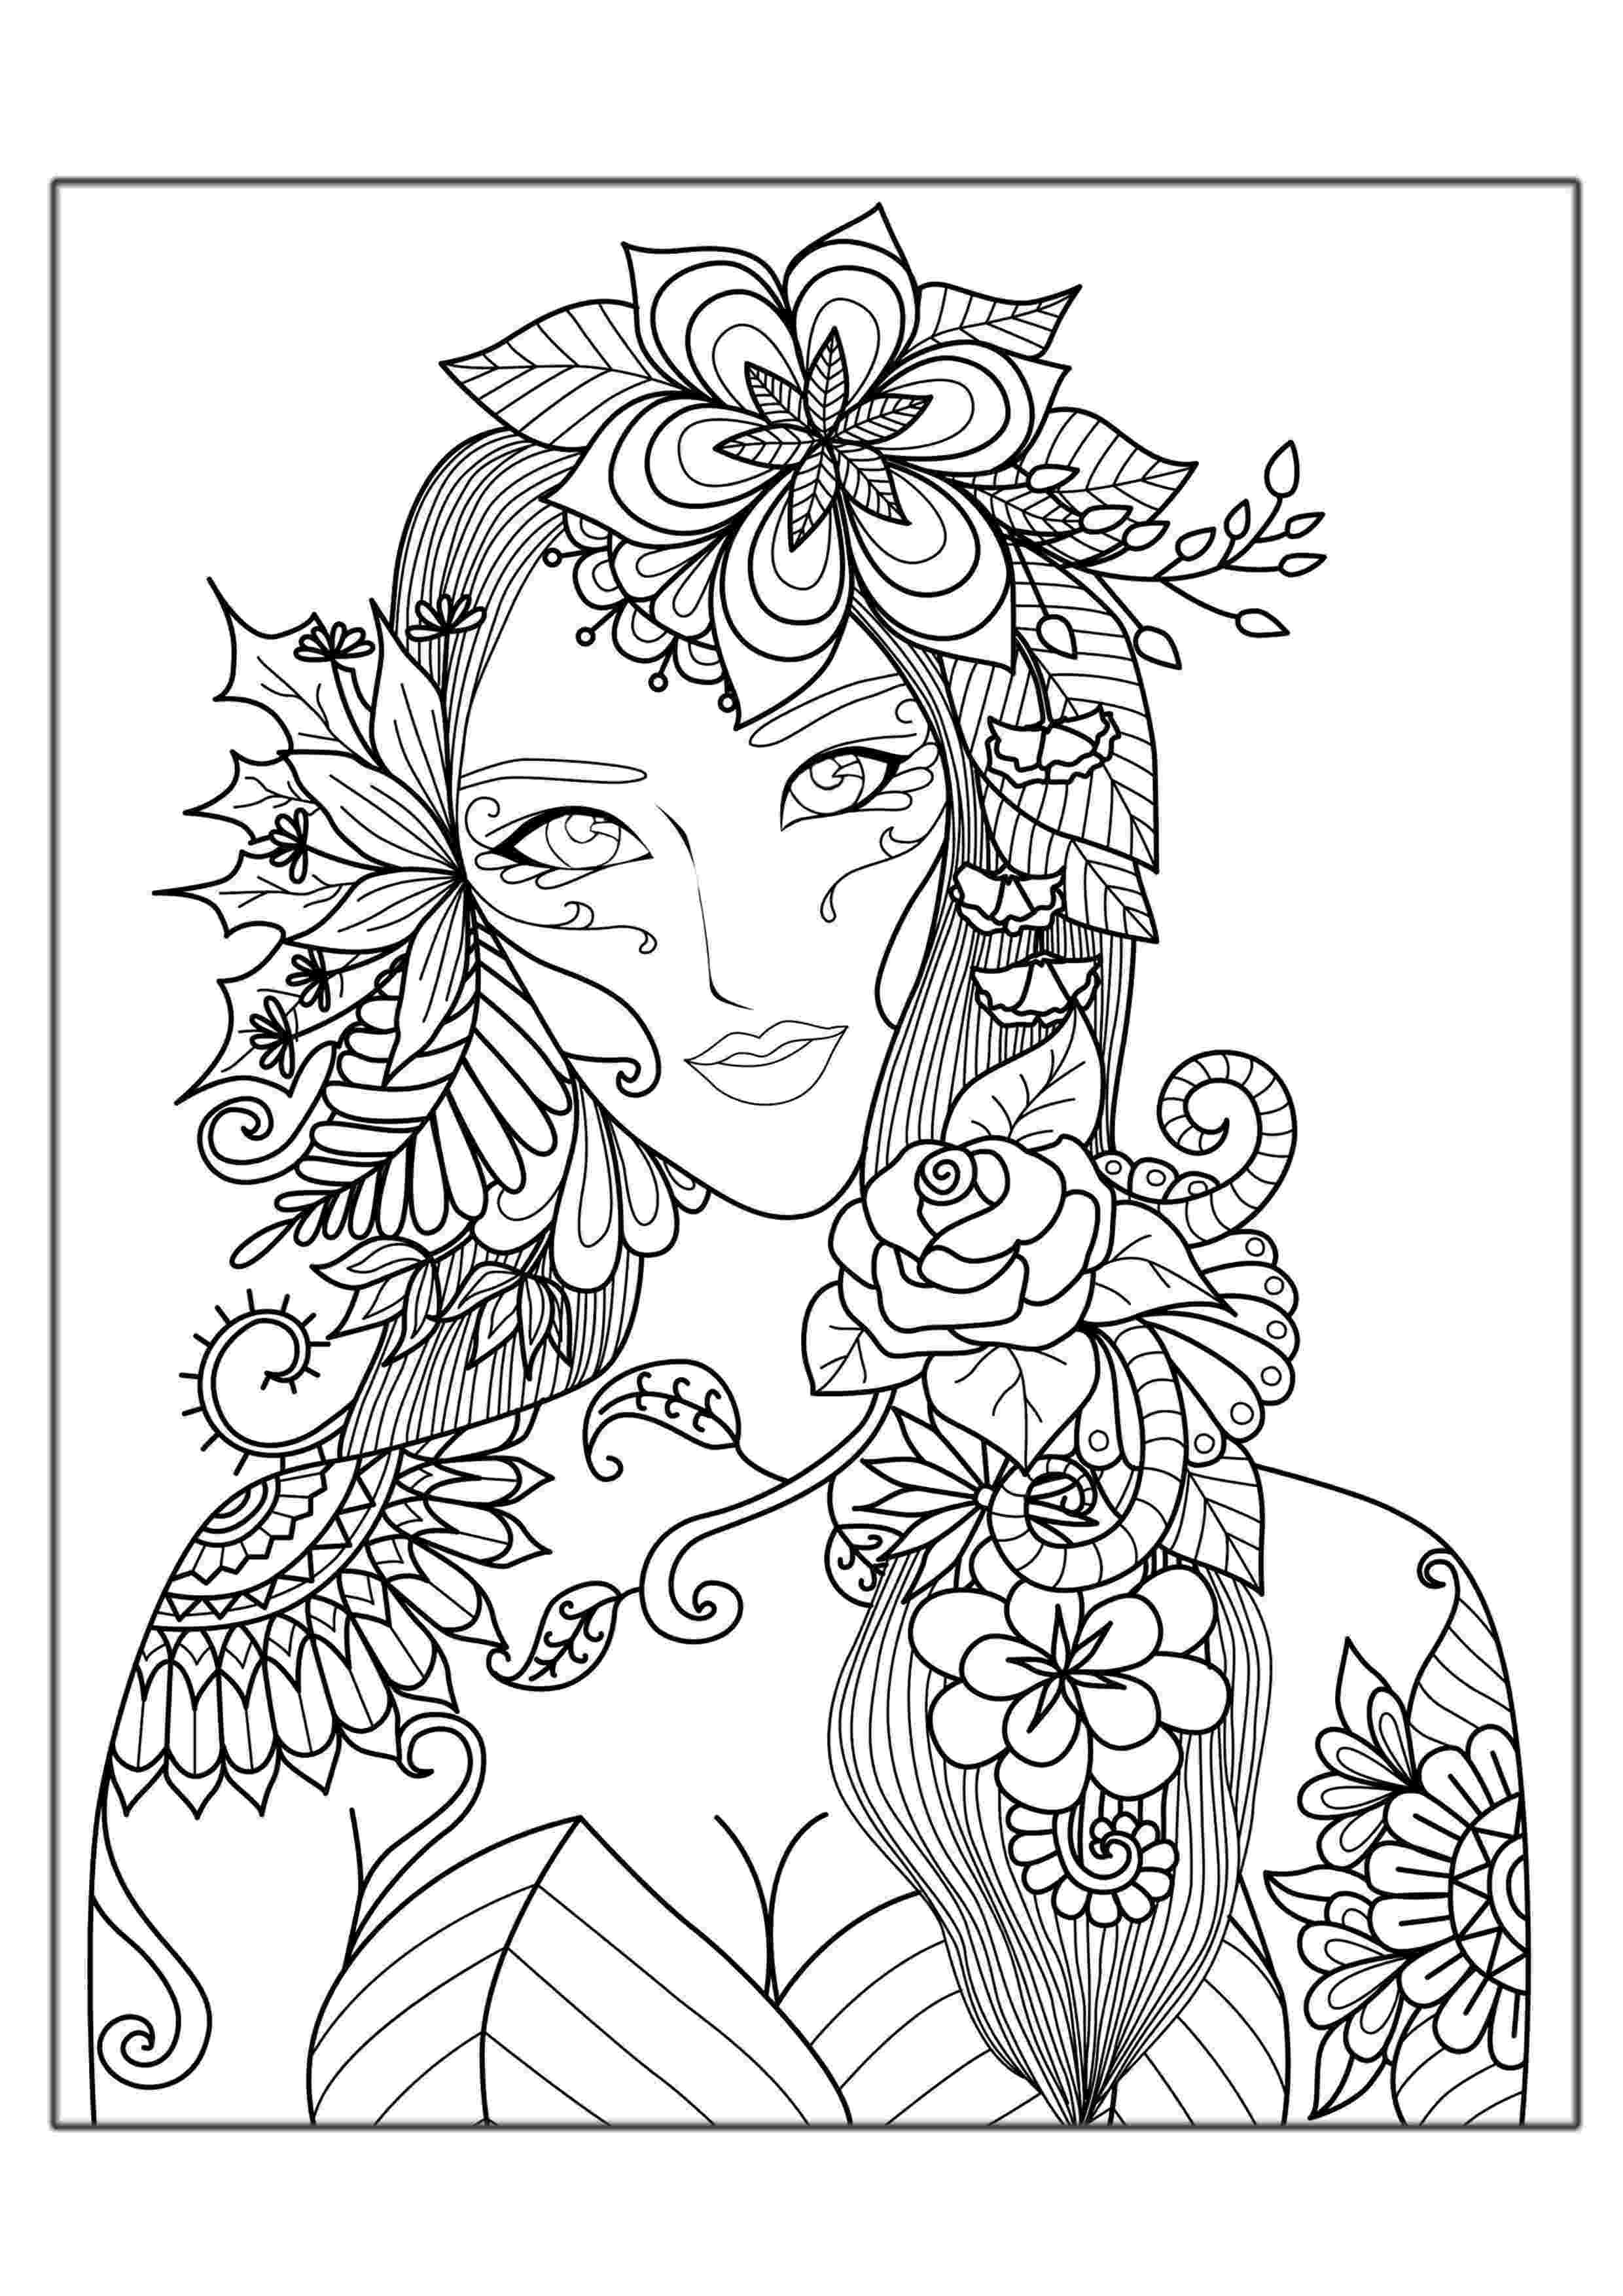 adult coloring pages online adult coloring pages flowers to download and print for free adult online pages coloring